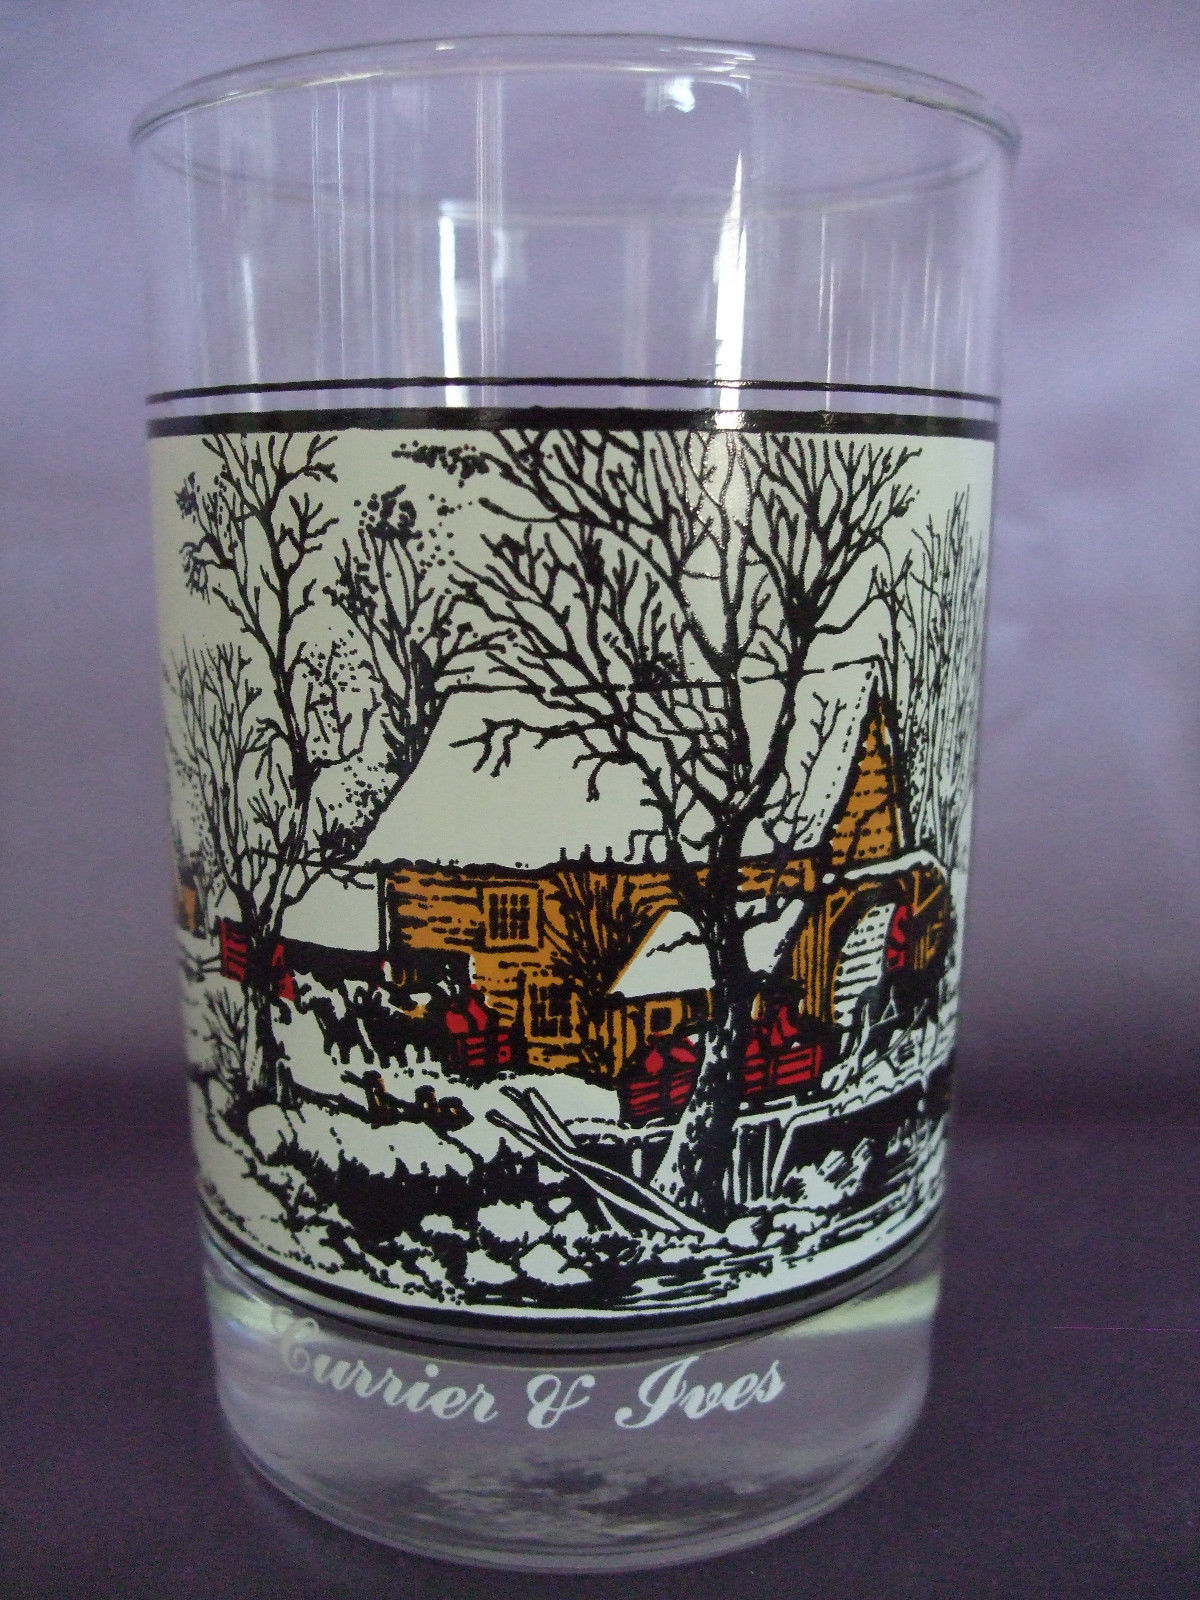 Arby's Currier & Ives Collector's Series Glasses, Set of 4